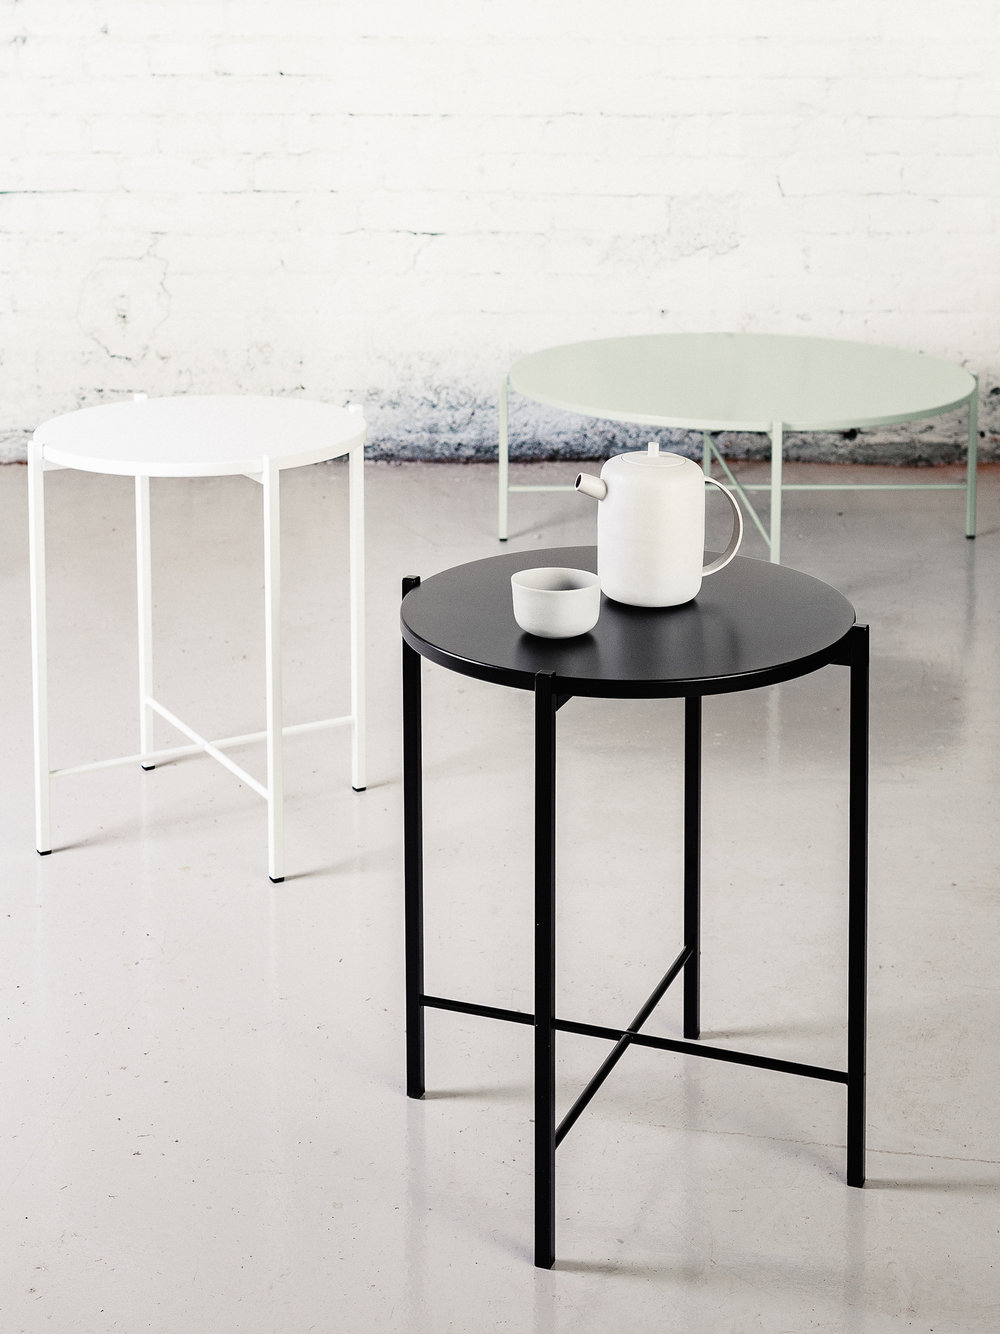 New colours out! White, black and Jade available in three sizes. Photography by Aleksi Tikkala